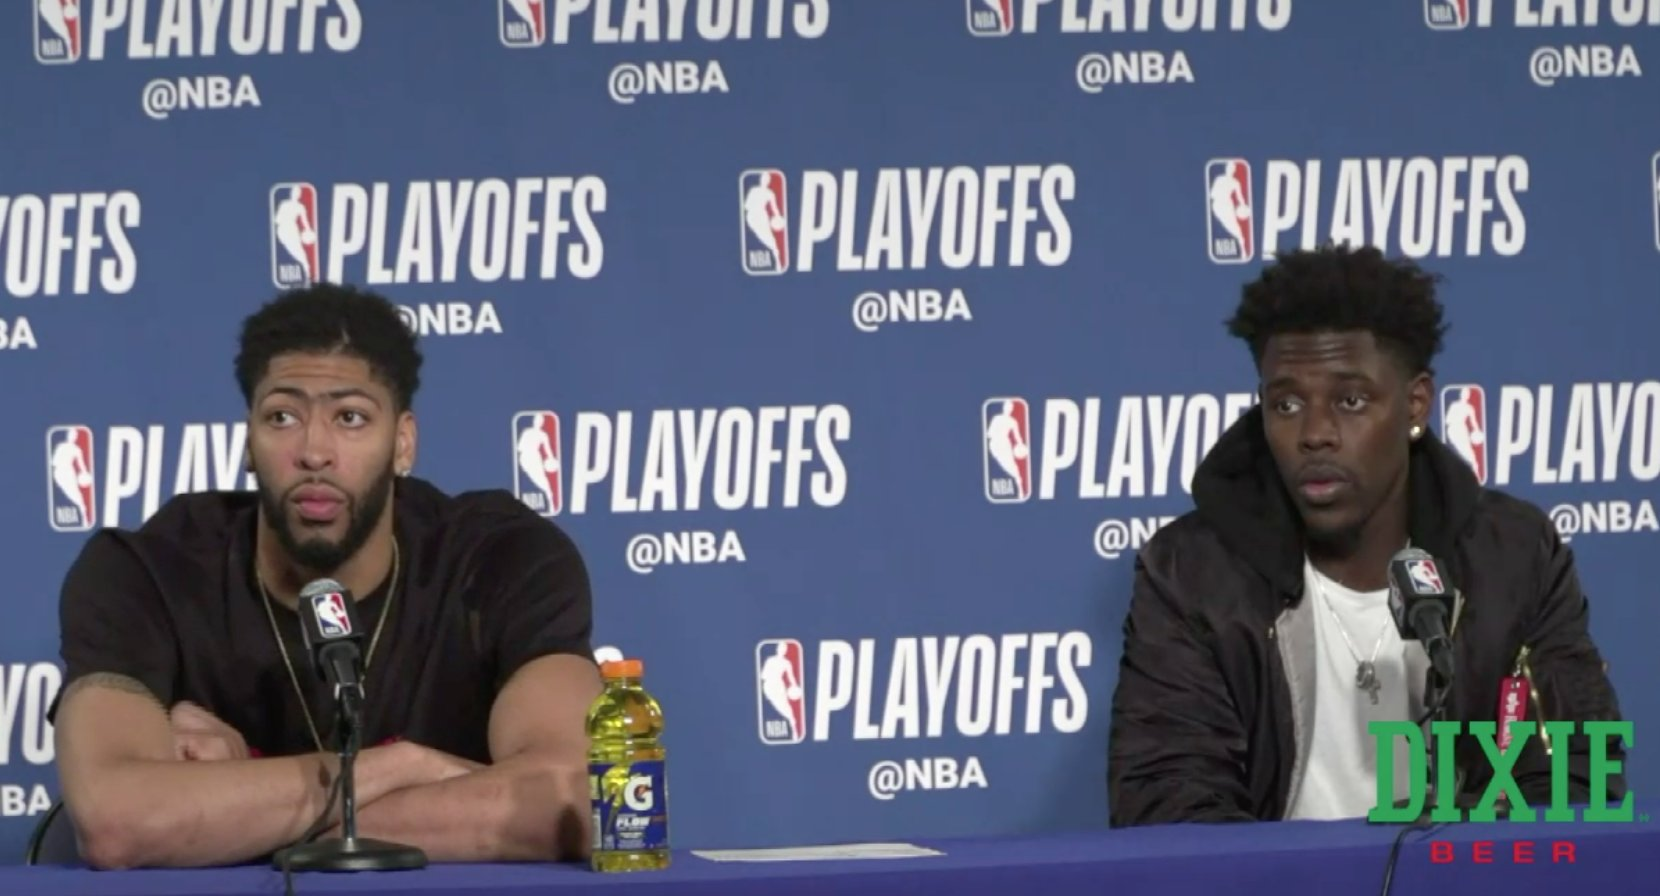 Davis and Holiday are speaking with the media  Watch Live: https://t.co/GNKFCulHmC  #doitBIGGER   (via @dixiebrewco) https://t.co/5Thl7uzGZe